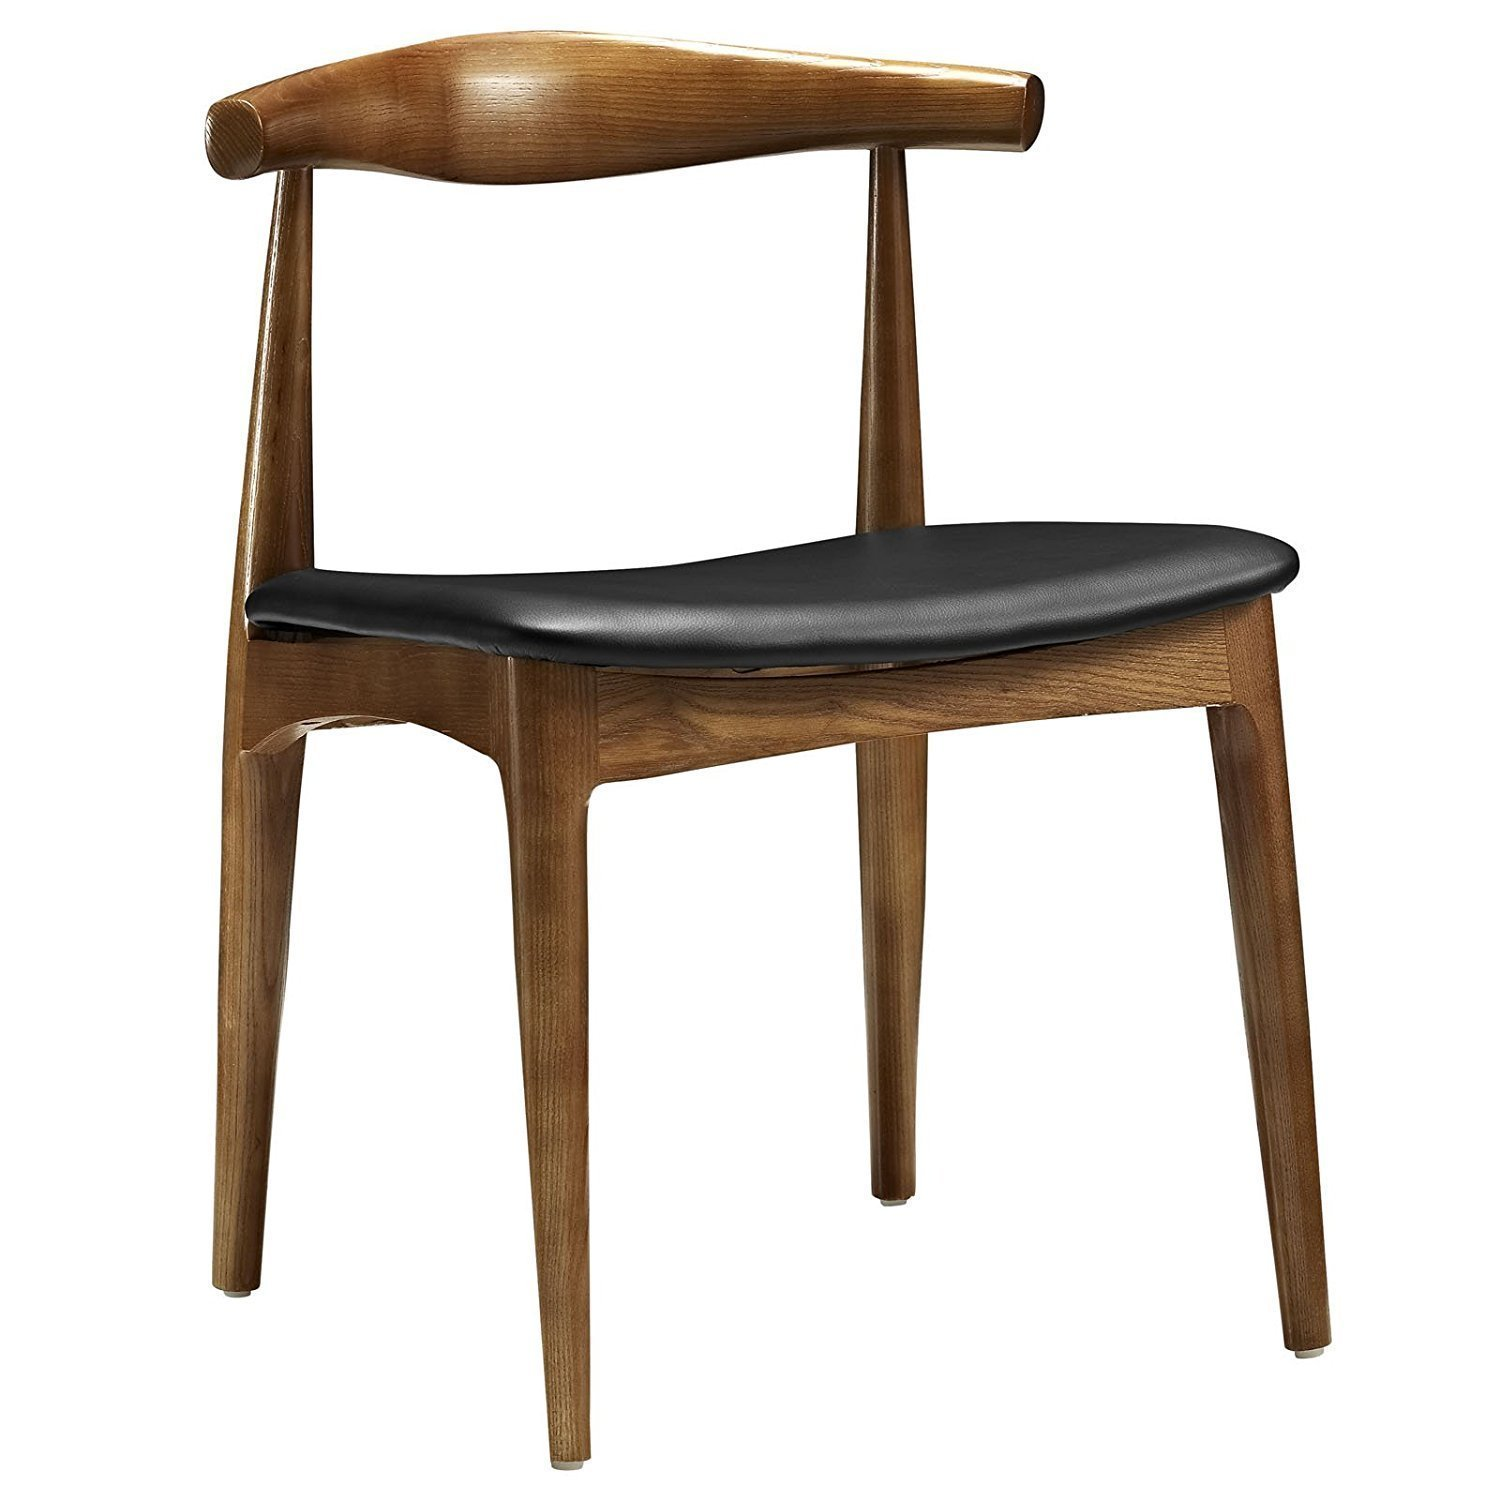 Hans Wegner Style Elbow Dining Chair, Black Faux Leather/Ash Wood Frame in Walnut Stain Dining Side Chair with Black PU Seat Cushion Walnut Finish-Set of 2